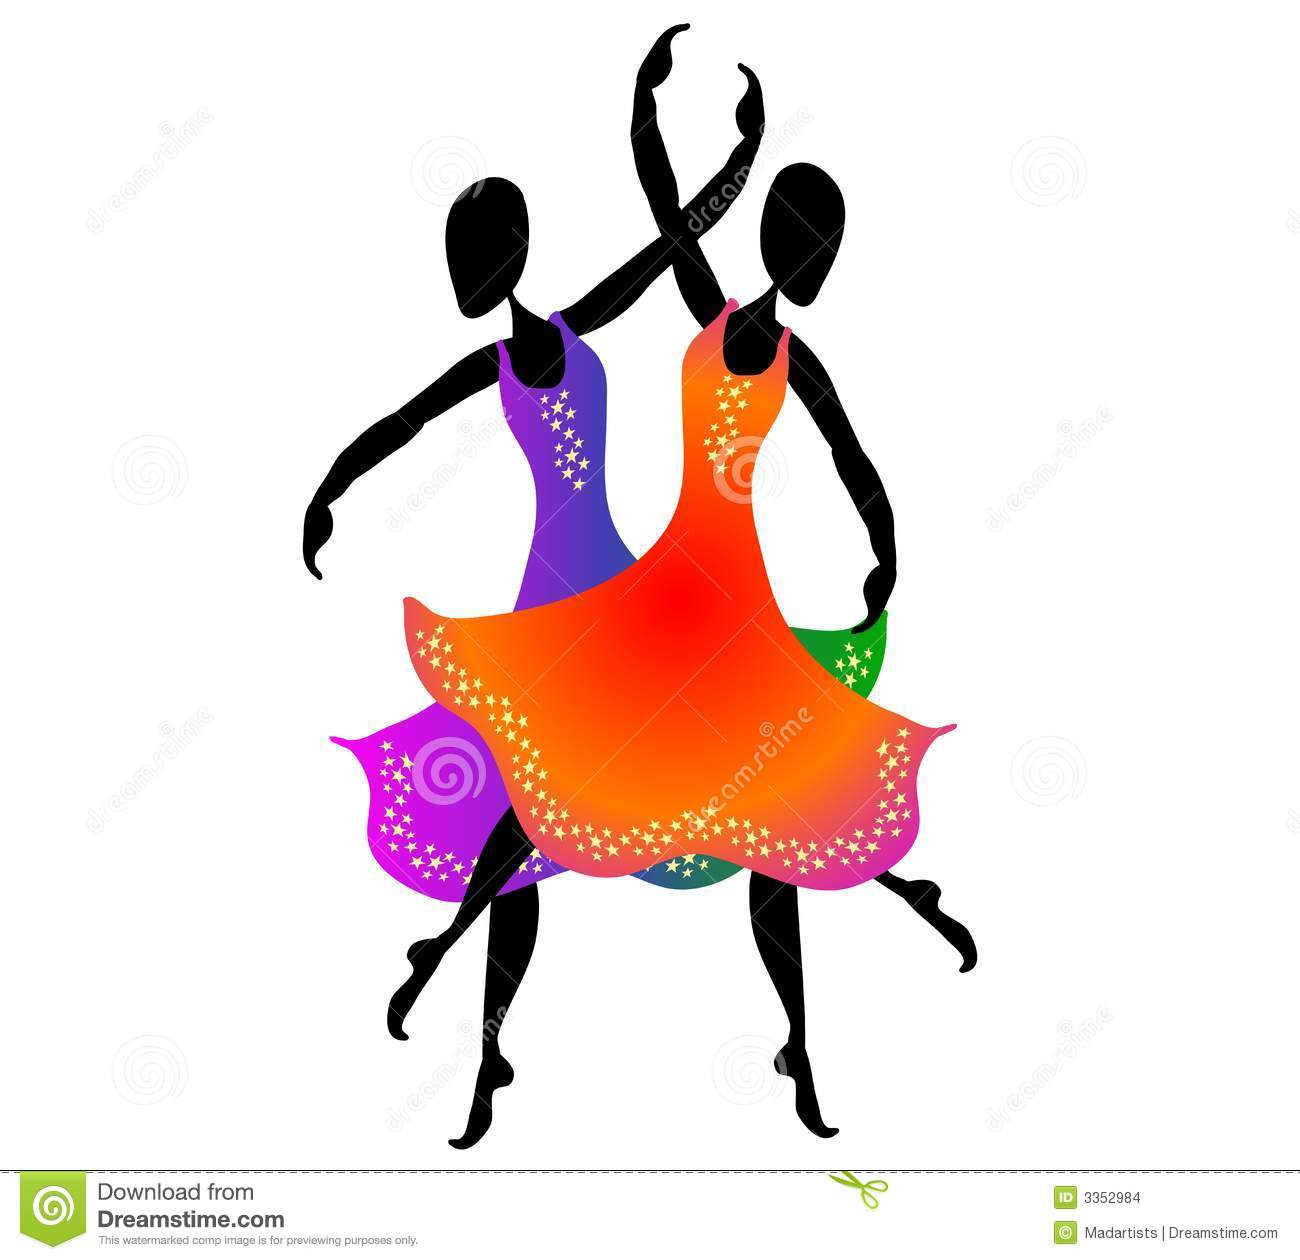 Dancers clipart in color.